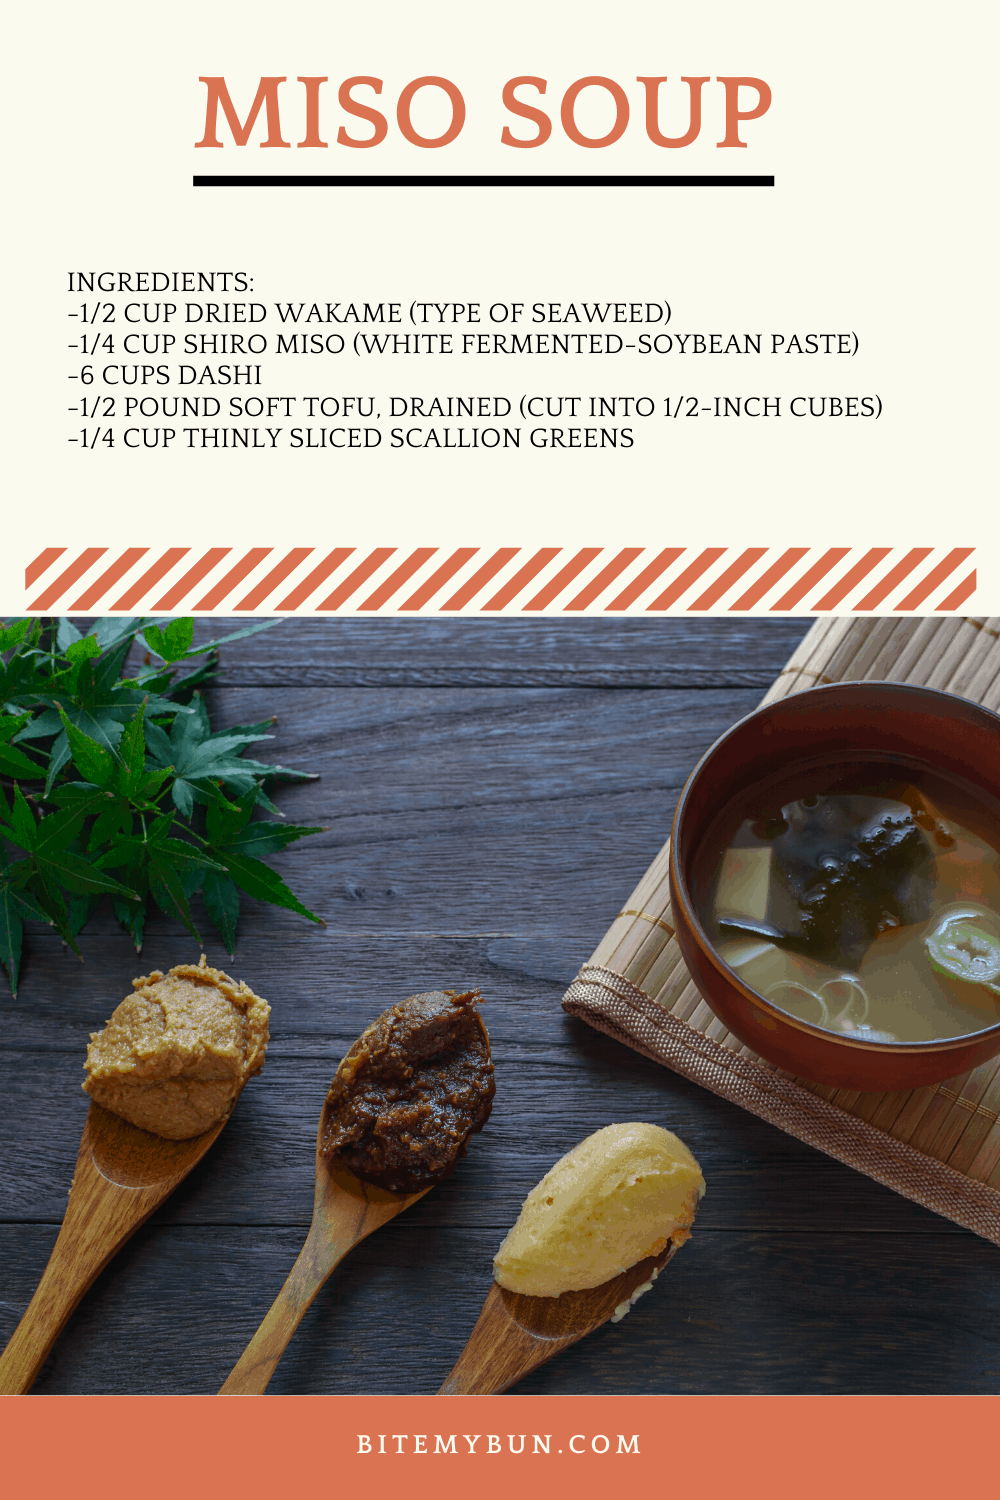 Miso Soup ingredients and cooking instructions